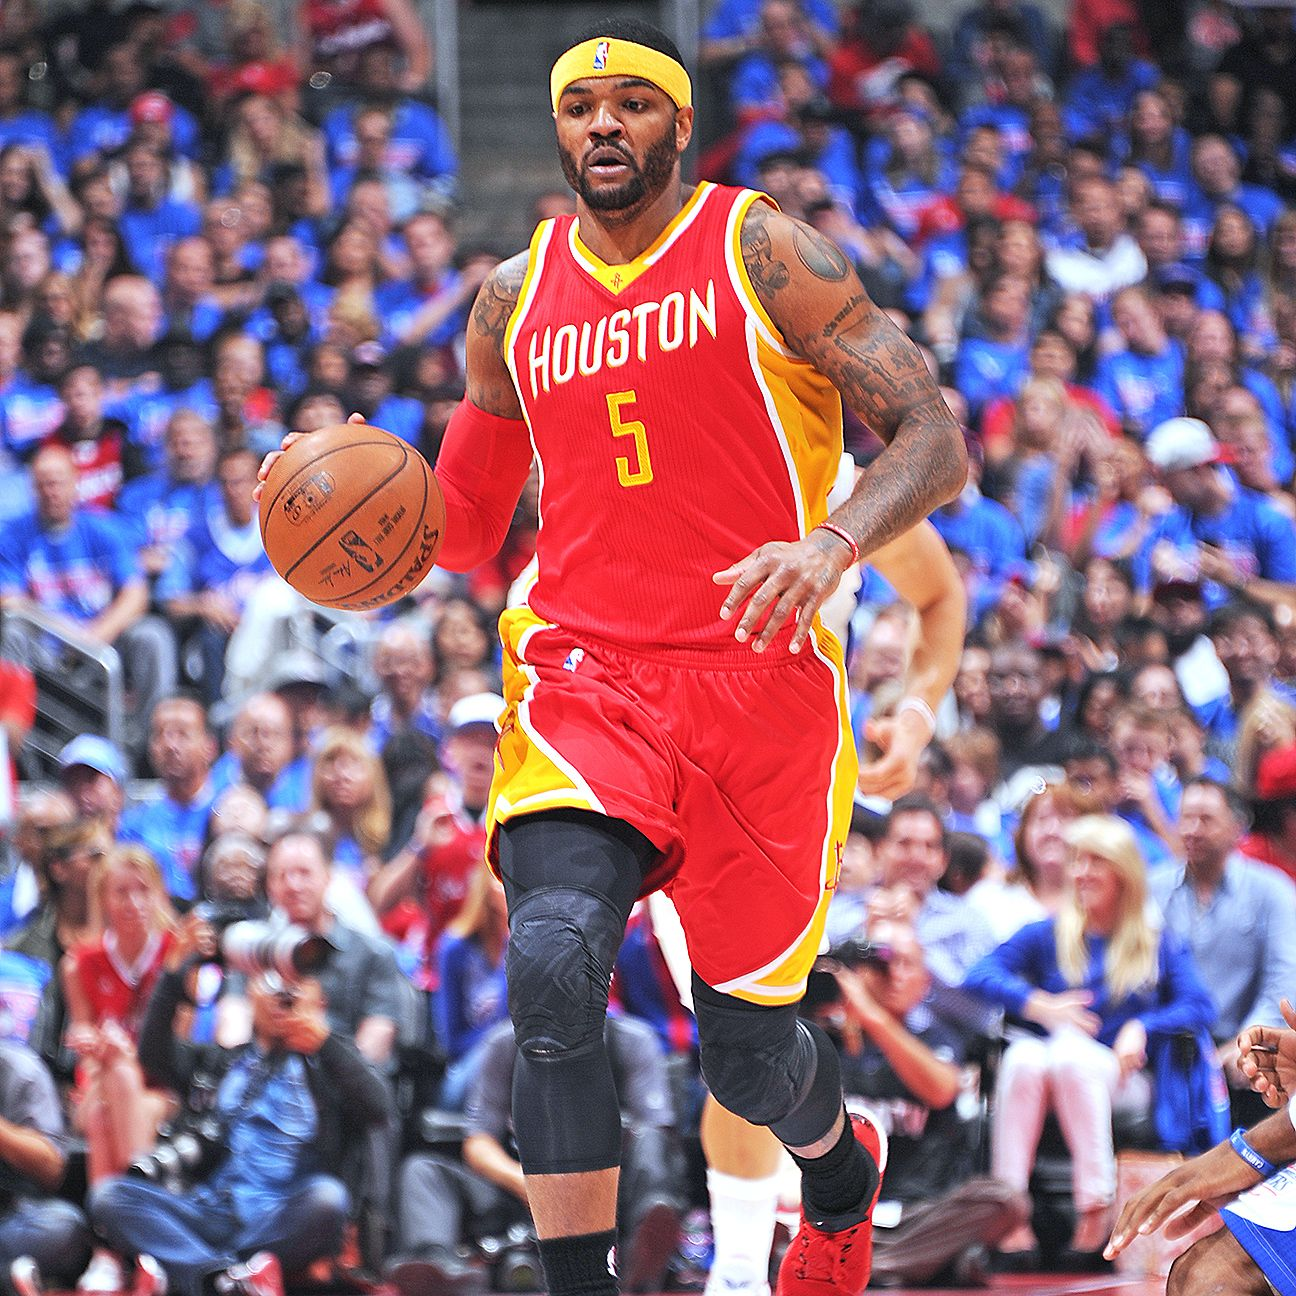 Houston Rockets Where To Watch The Upcoming Match Espn: Houston Rockets Move Josh Smith Into Starting Lineup For